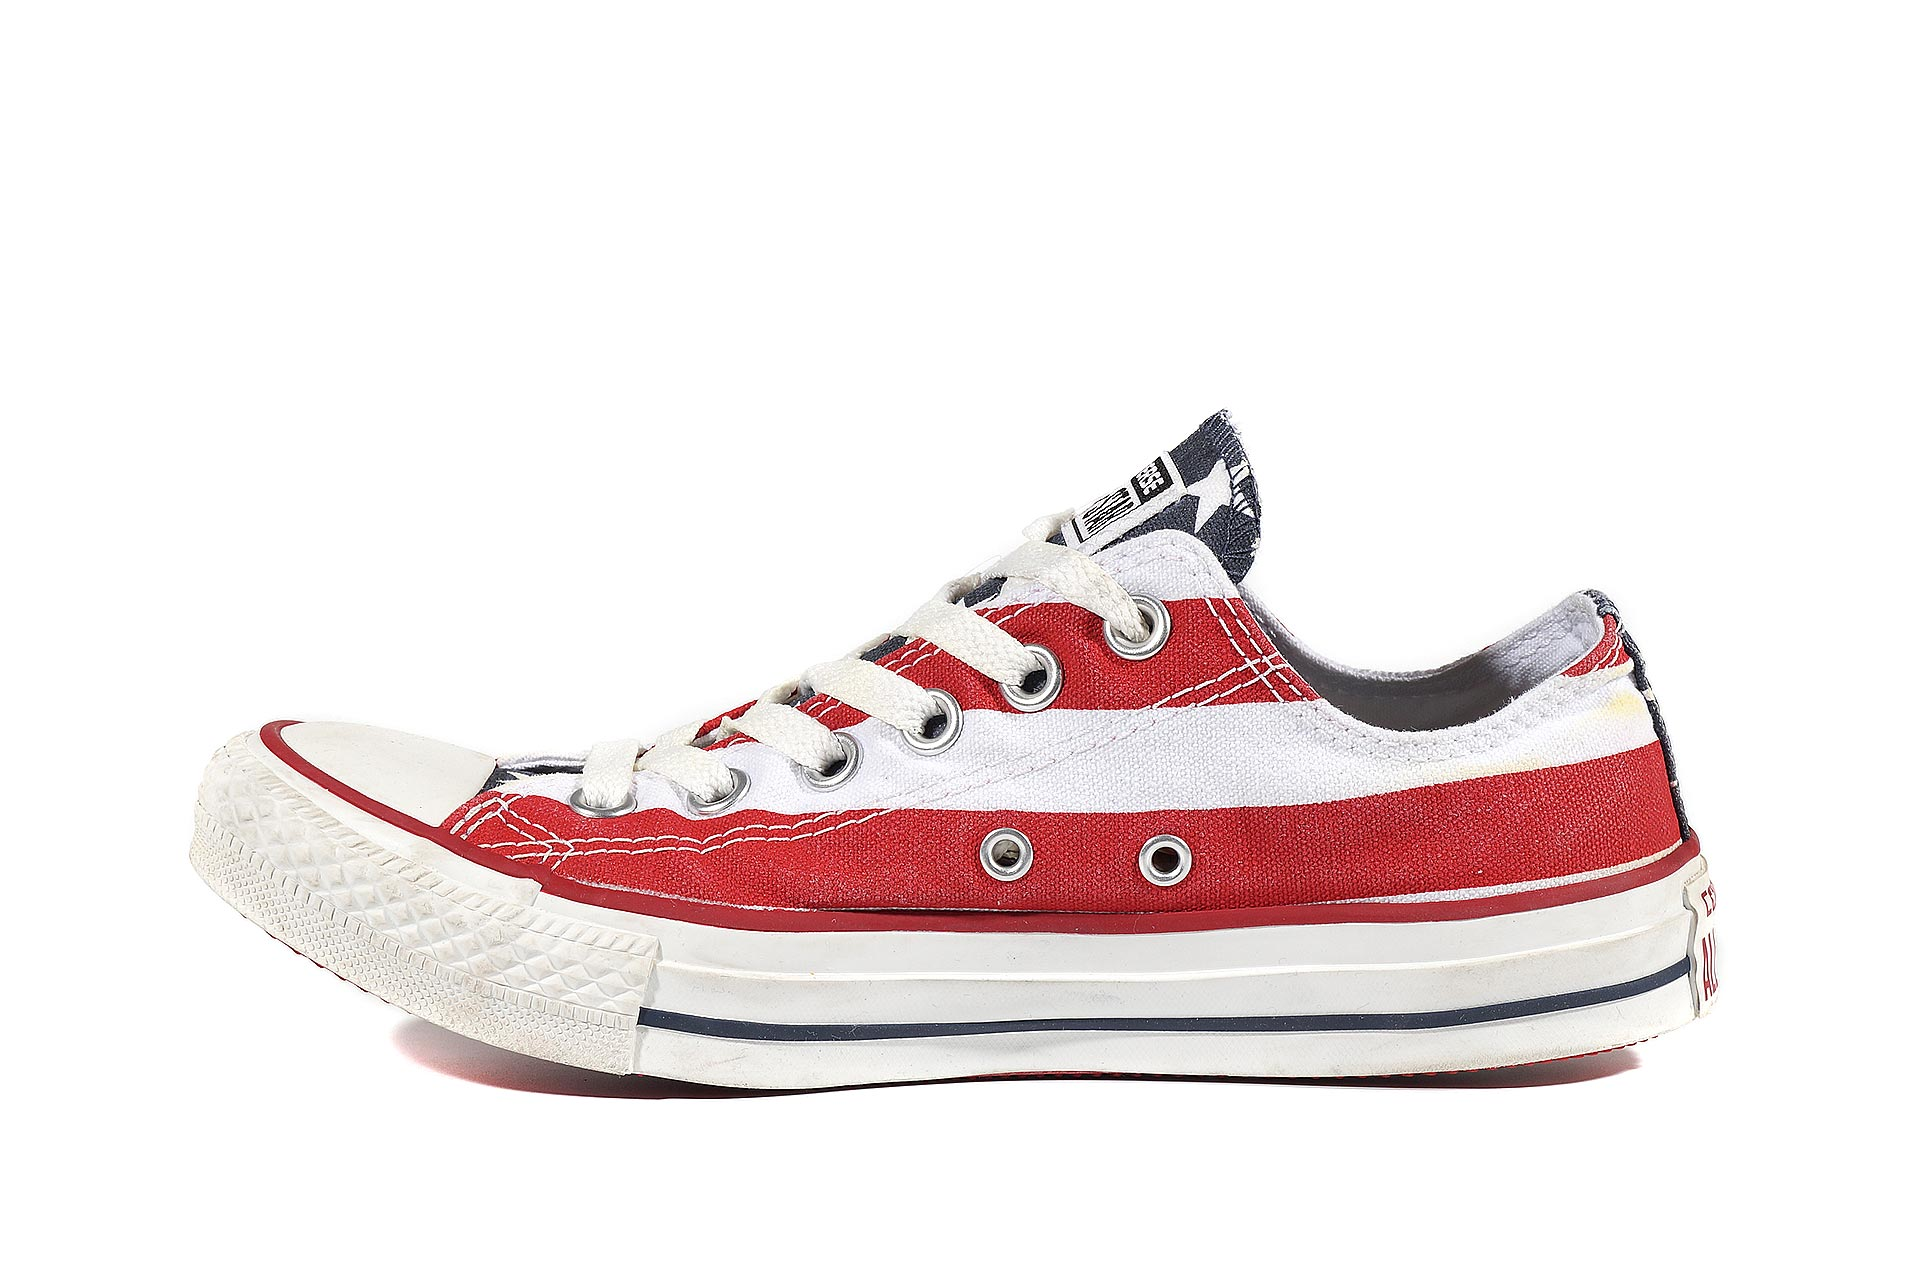 e8f222ad2d03 Converse Chuck Taylor All Star M3494 (00051-U) sneakers used buy online  shop vintageshoes.ru